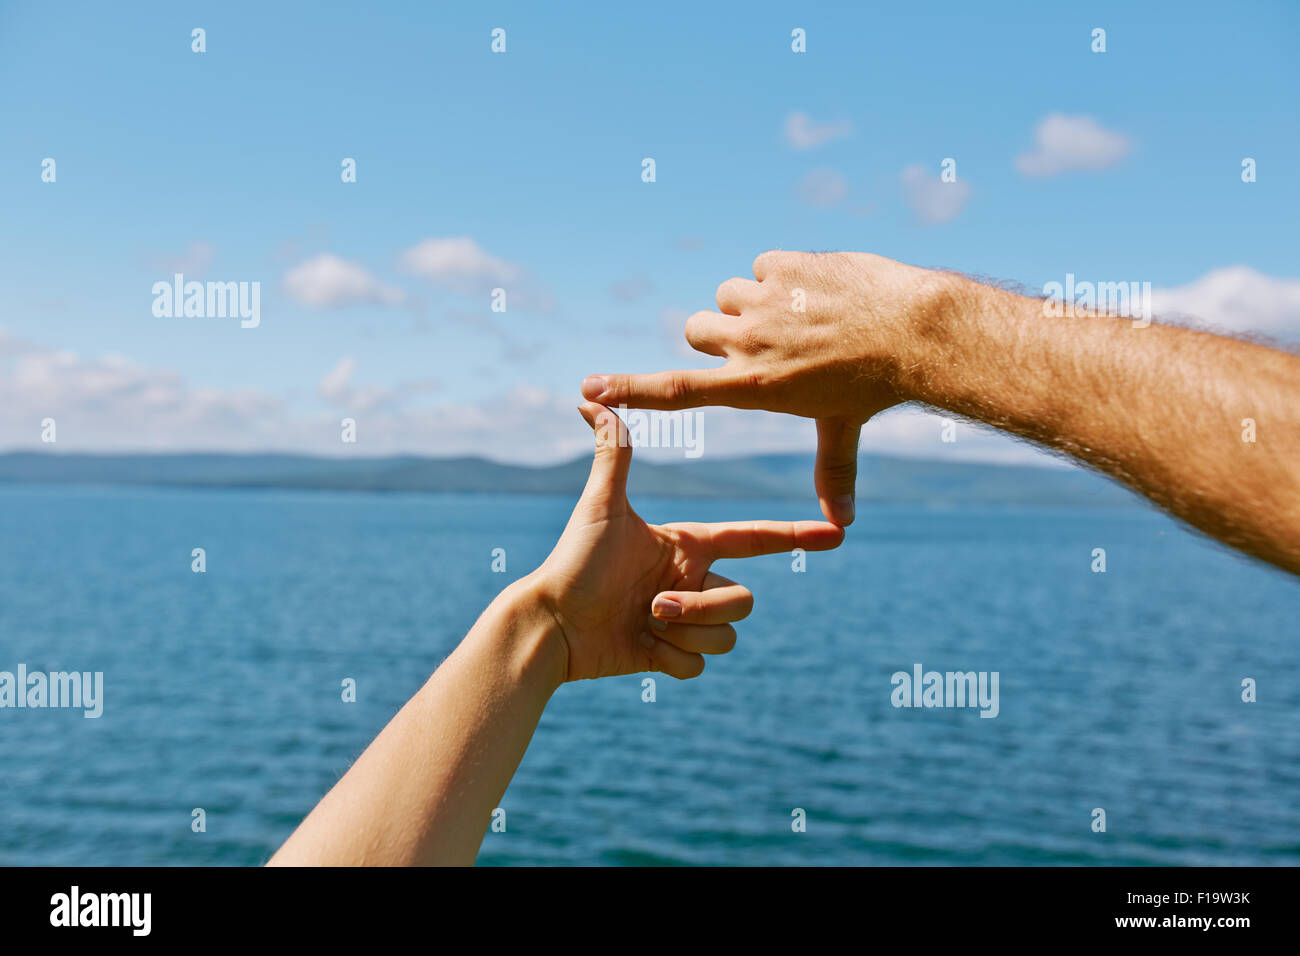 Human hands making frame against sea and skyline - Stock Image